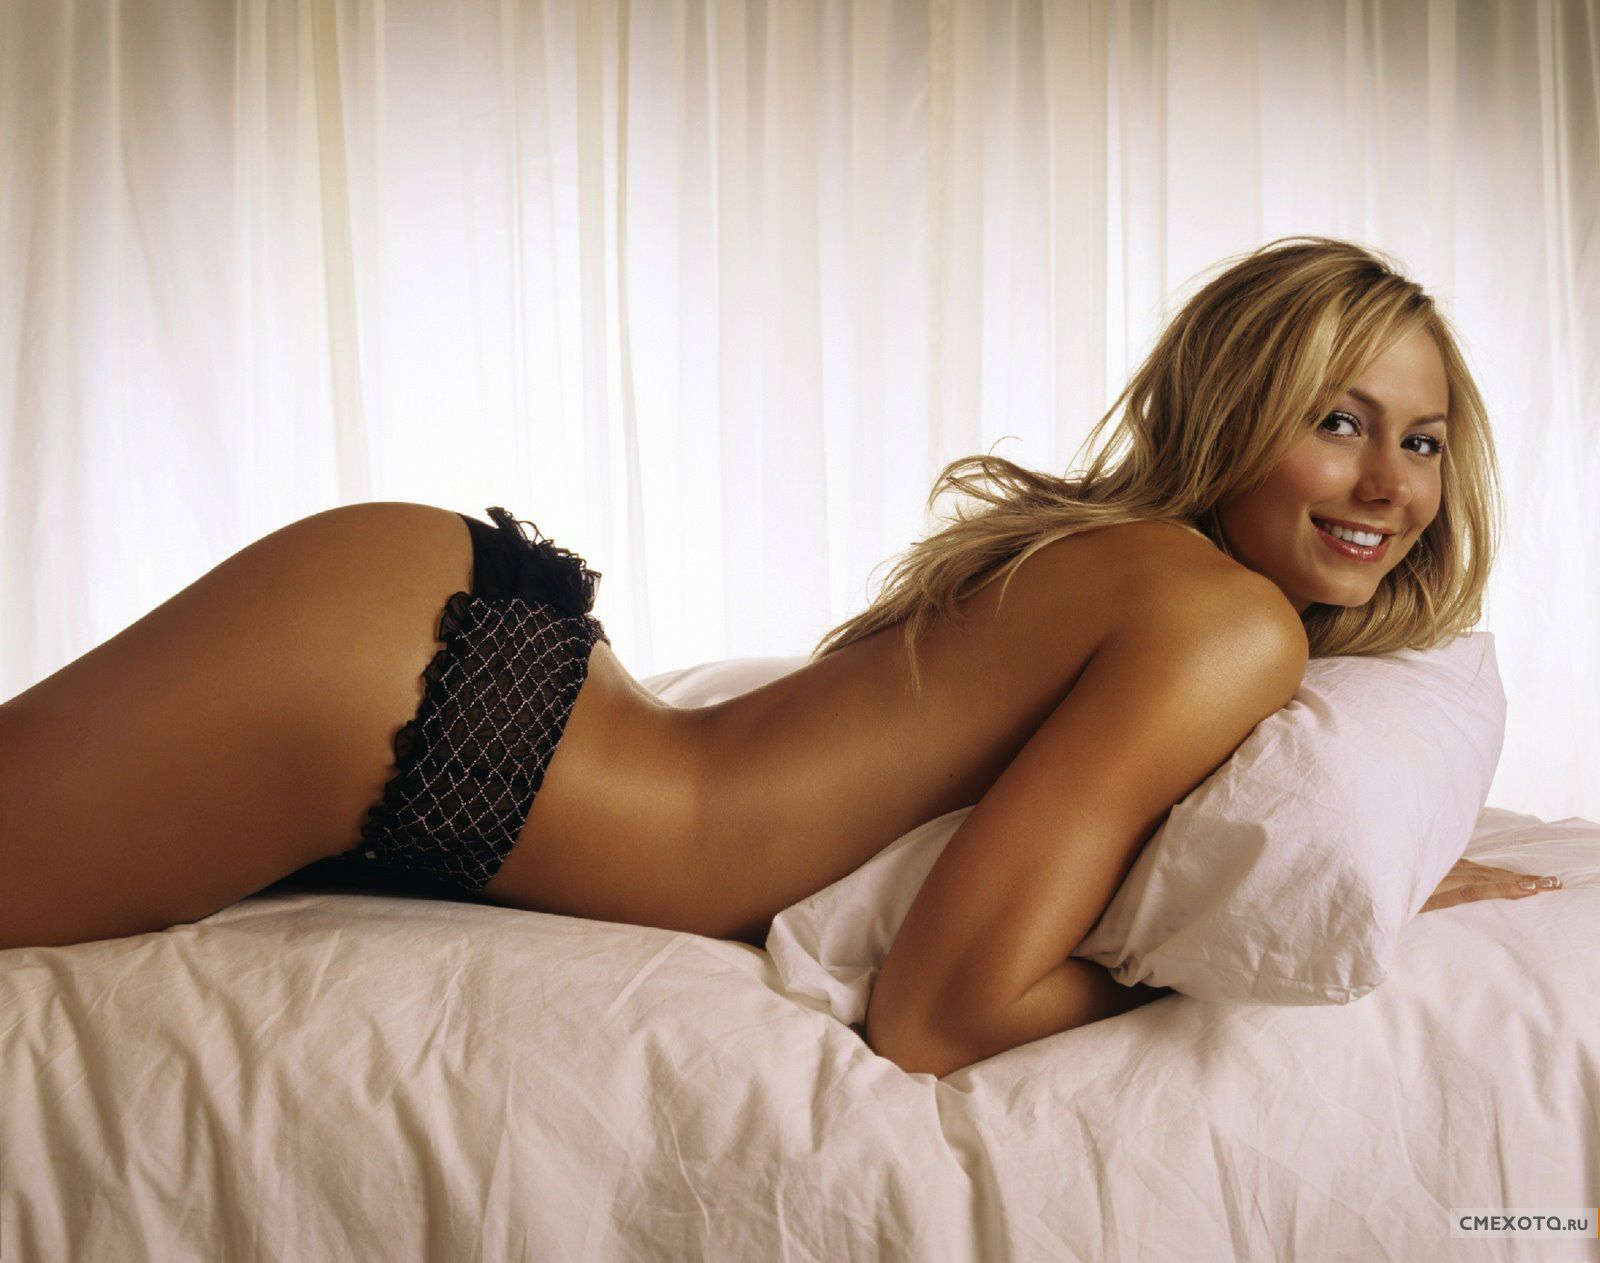 Красотка Стэйси Кейблер (Stacy Keibler) (44 HQ фото)